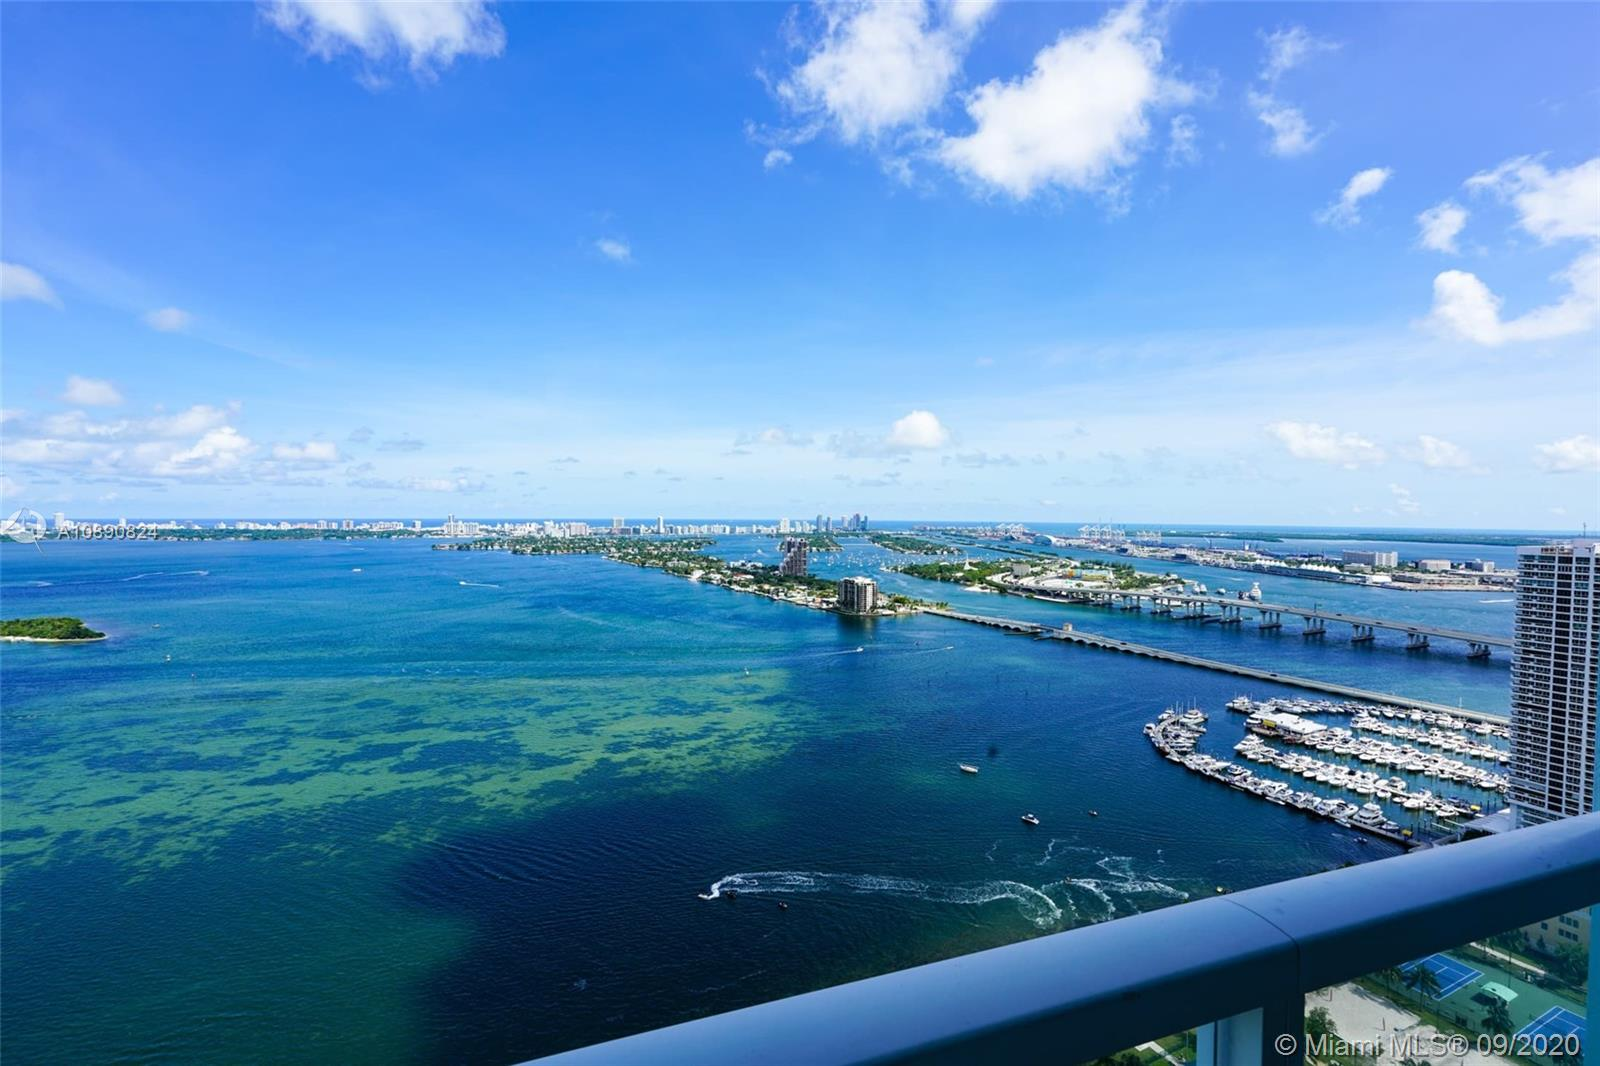 Completely painted & remodeled spacious two-bedroom, two -½ -bathroom condo. Quantum on the Bay offering 180º view of Biscayne Bay from a large balcony and all bedrooms. Only the kitchen has a tiled floor, and the rest of the apartment has wood floors. Modern kitchen with stainless steel appliances. The unit contains a Washer & Dryer. Building offers first-class amenities such as 2 swimming pools, gym, business center, convenience store, movie theater, club room, Spinning room and valet. Rent includes basic cable, water & internet.